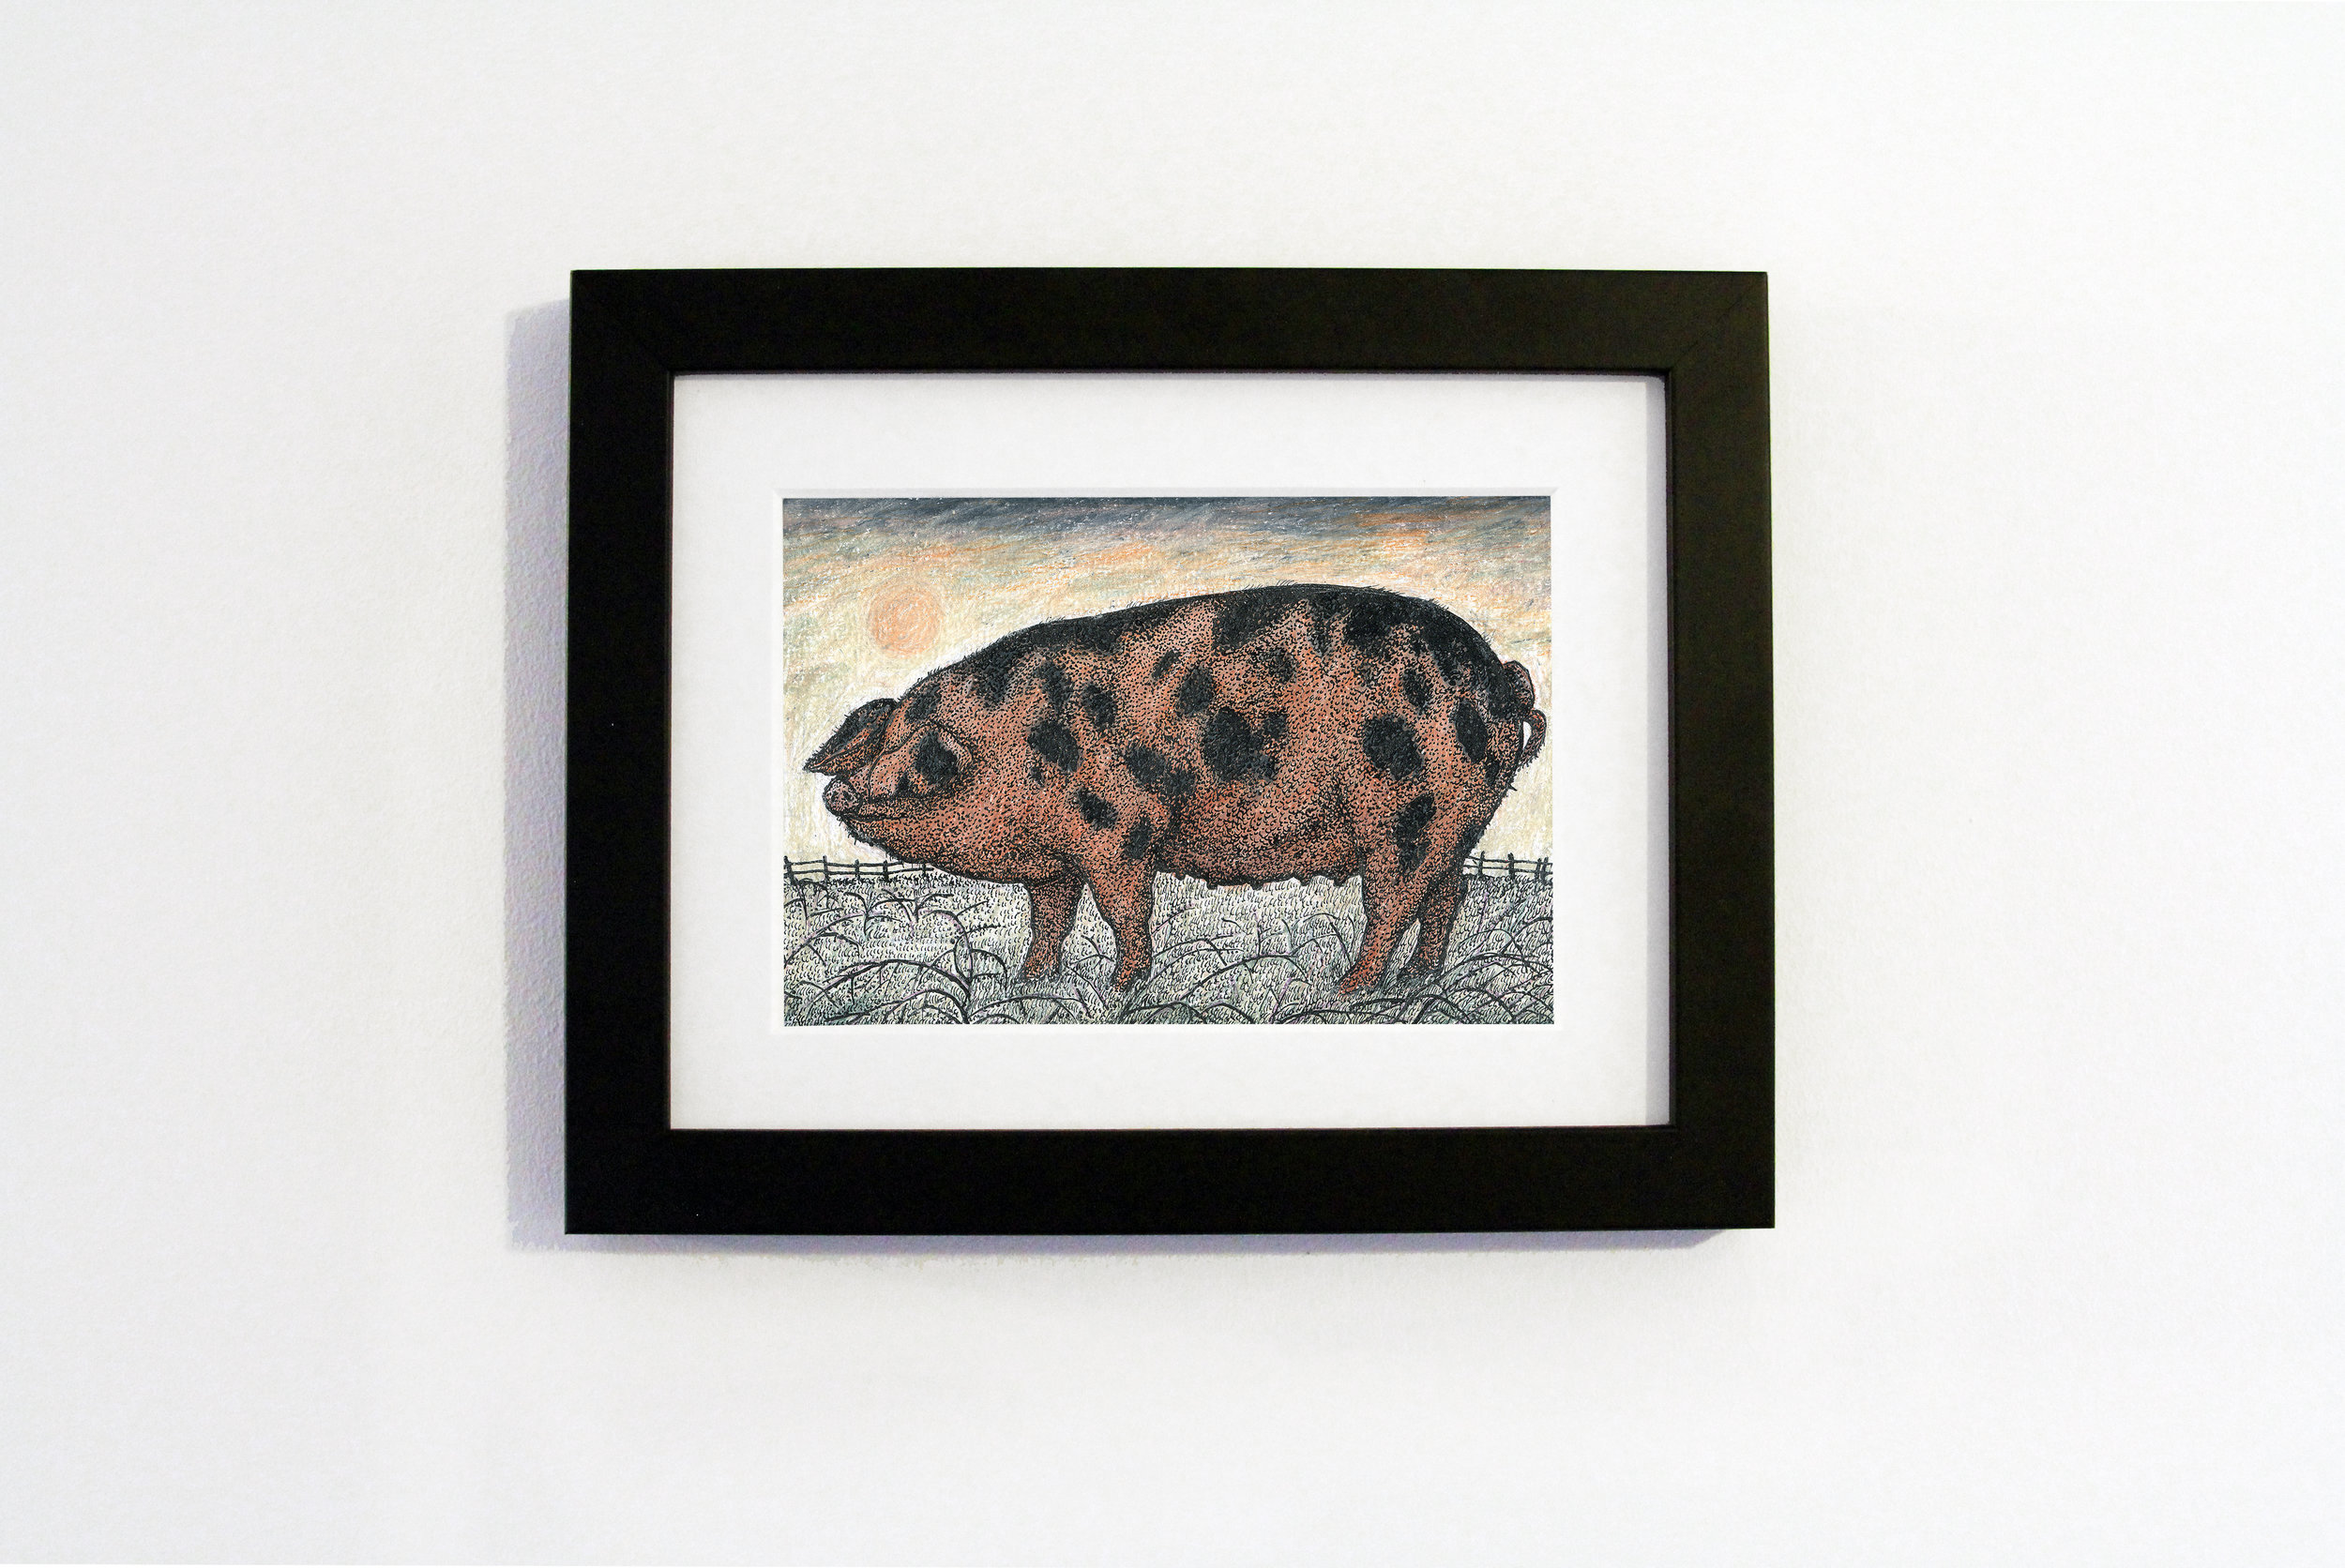 oxford sandy and black pig black frame.jpg